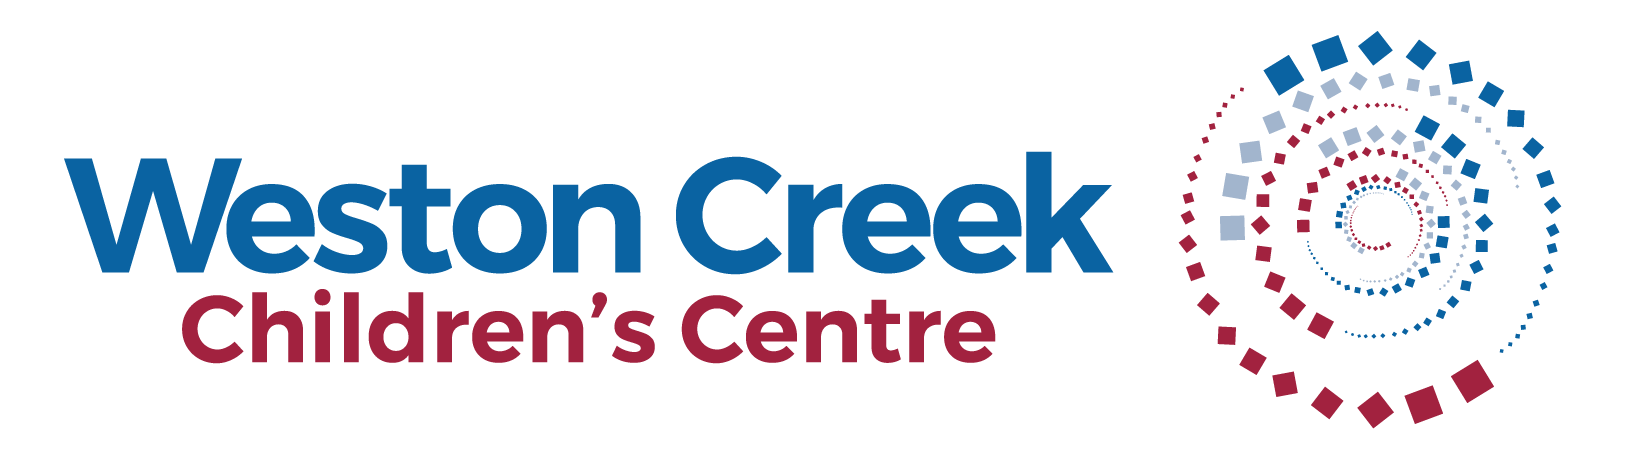 Weston Creek Children's Centre